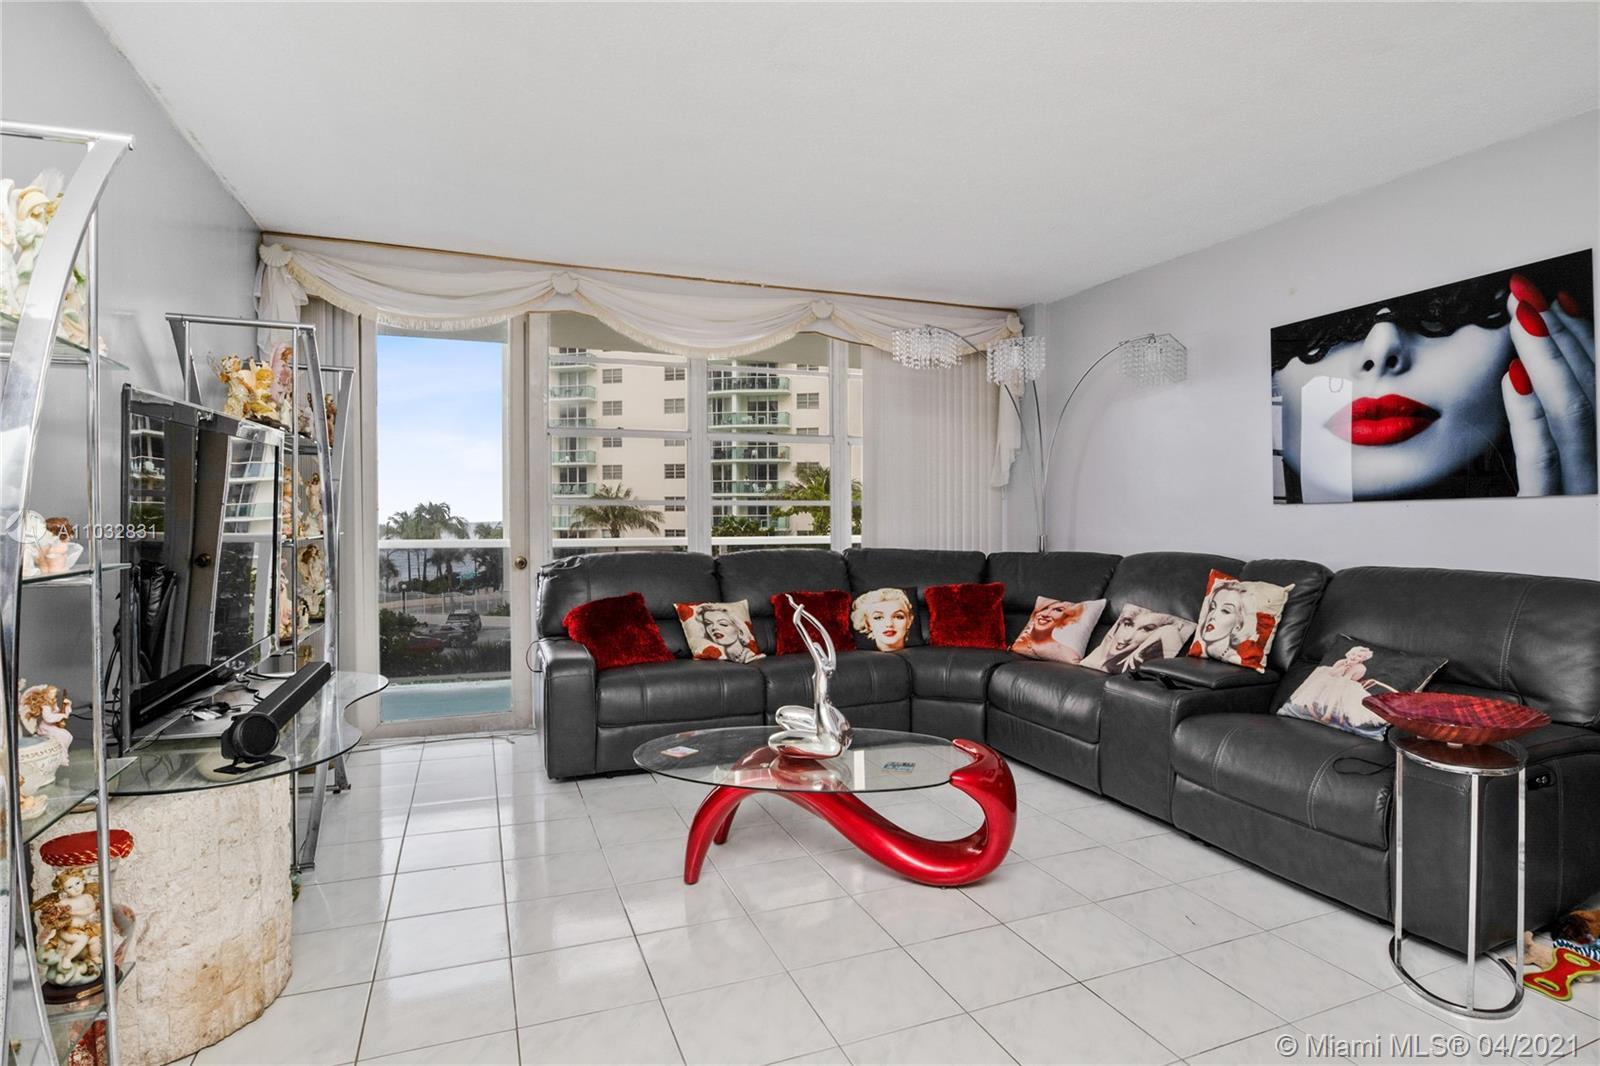 Amazing opportunity on Hollywood beach. 2/2 ocean front condo with tons of space, amazing kitchen, H